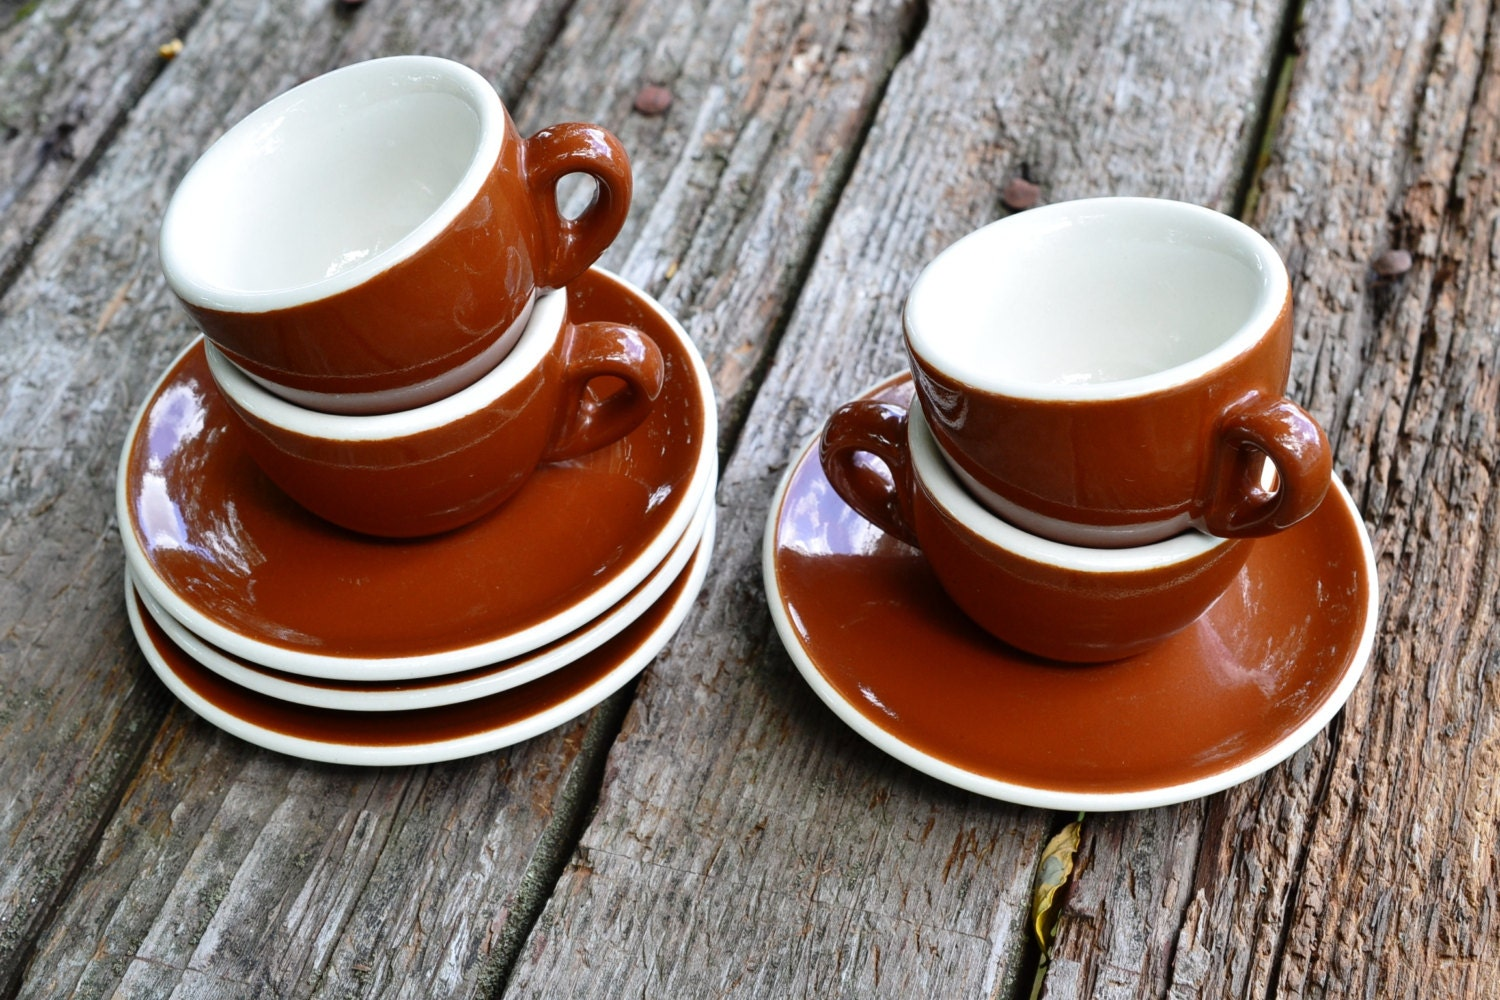 Acf Italy Demitasse Cups Amp Saucers Set Of 4 Porcelain Espresso